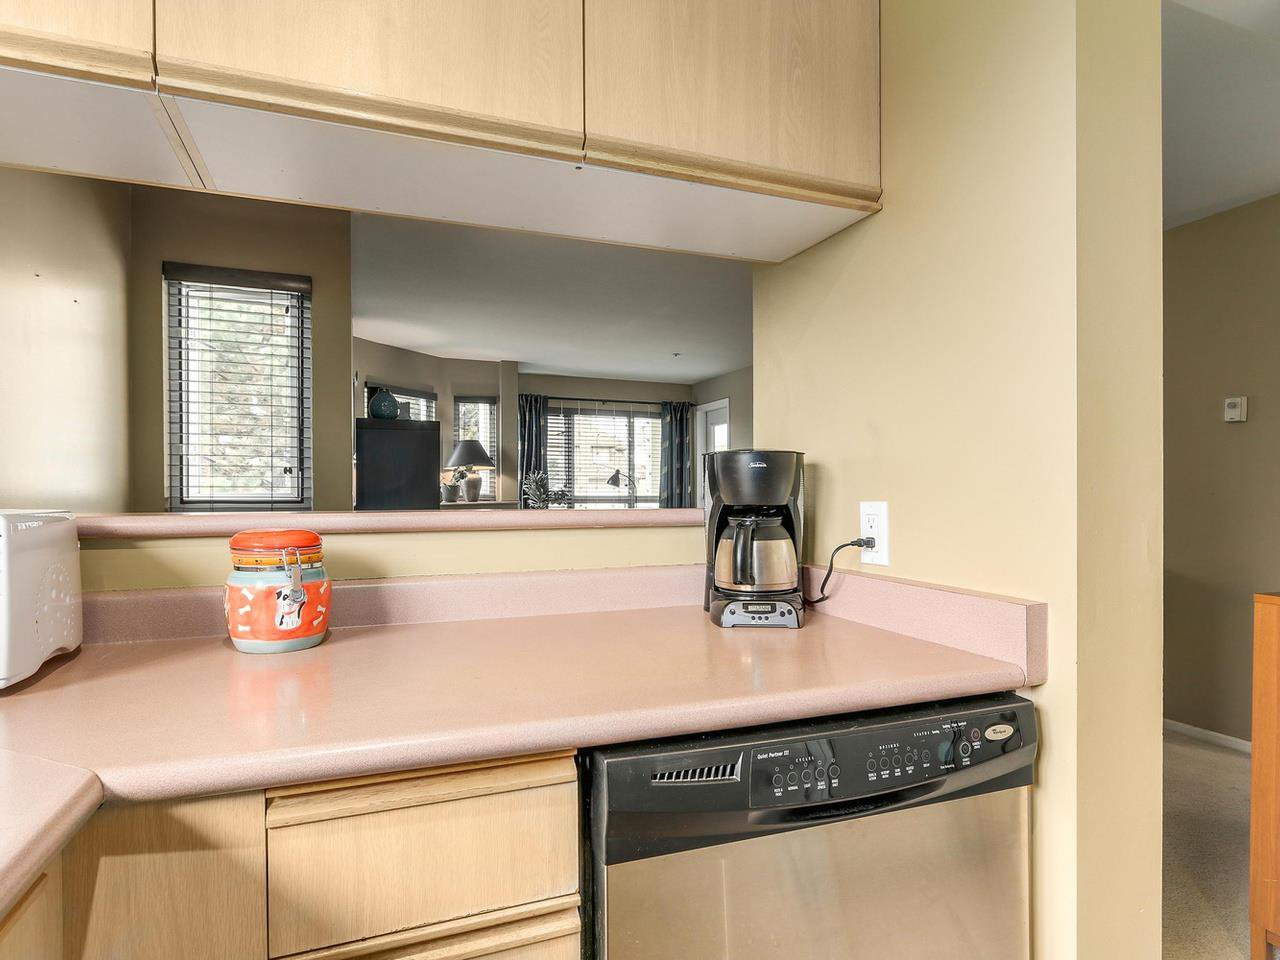 """Photo 12: Photos: 301 1623 E 2ND Avenue in Vancouver: Grandview VE Condo for sale in """"GRANDVIEW MANOR"""" (Vancouver East)  : MLS®# R2122830"""